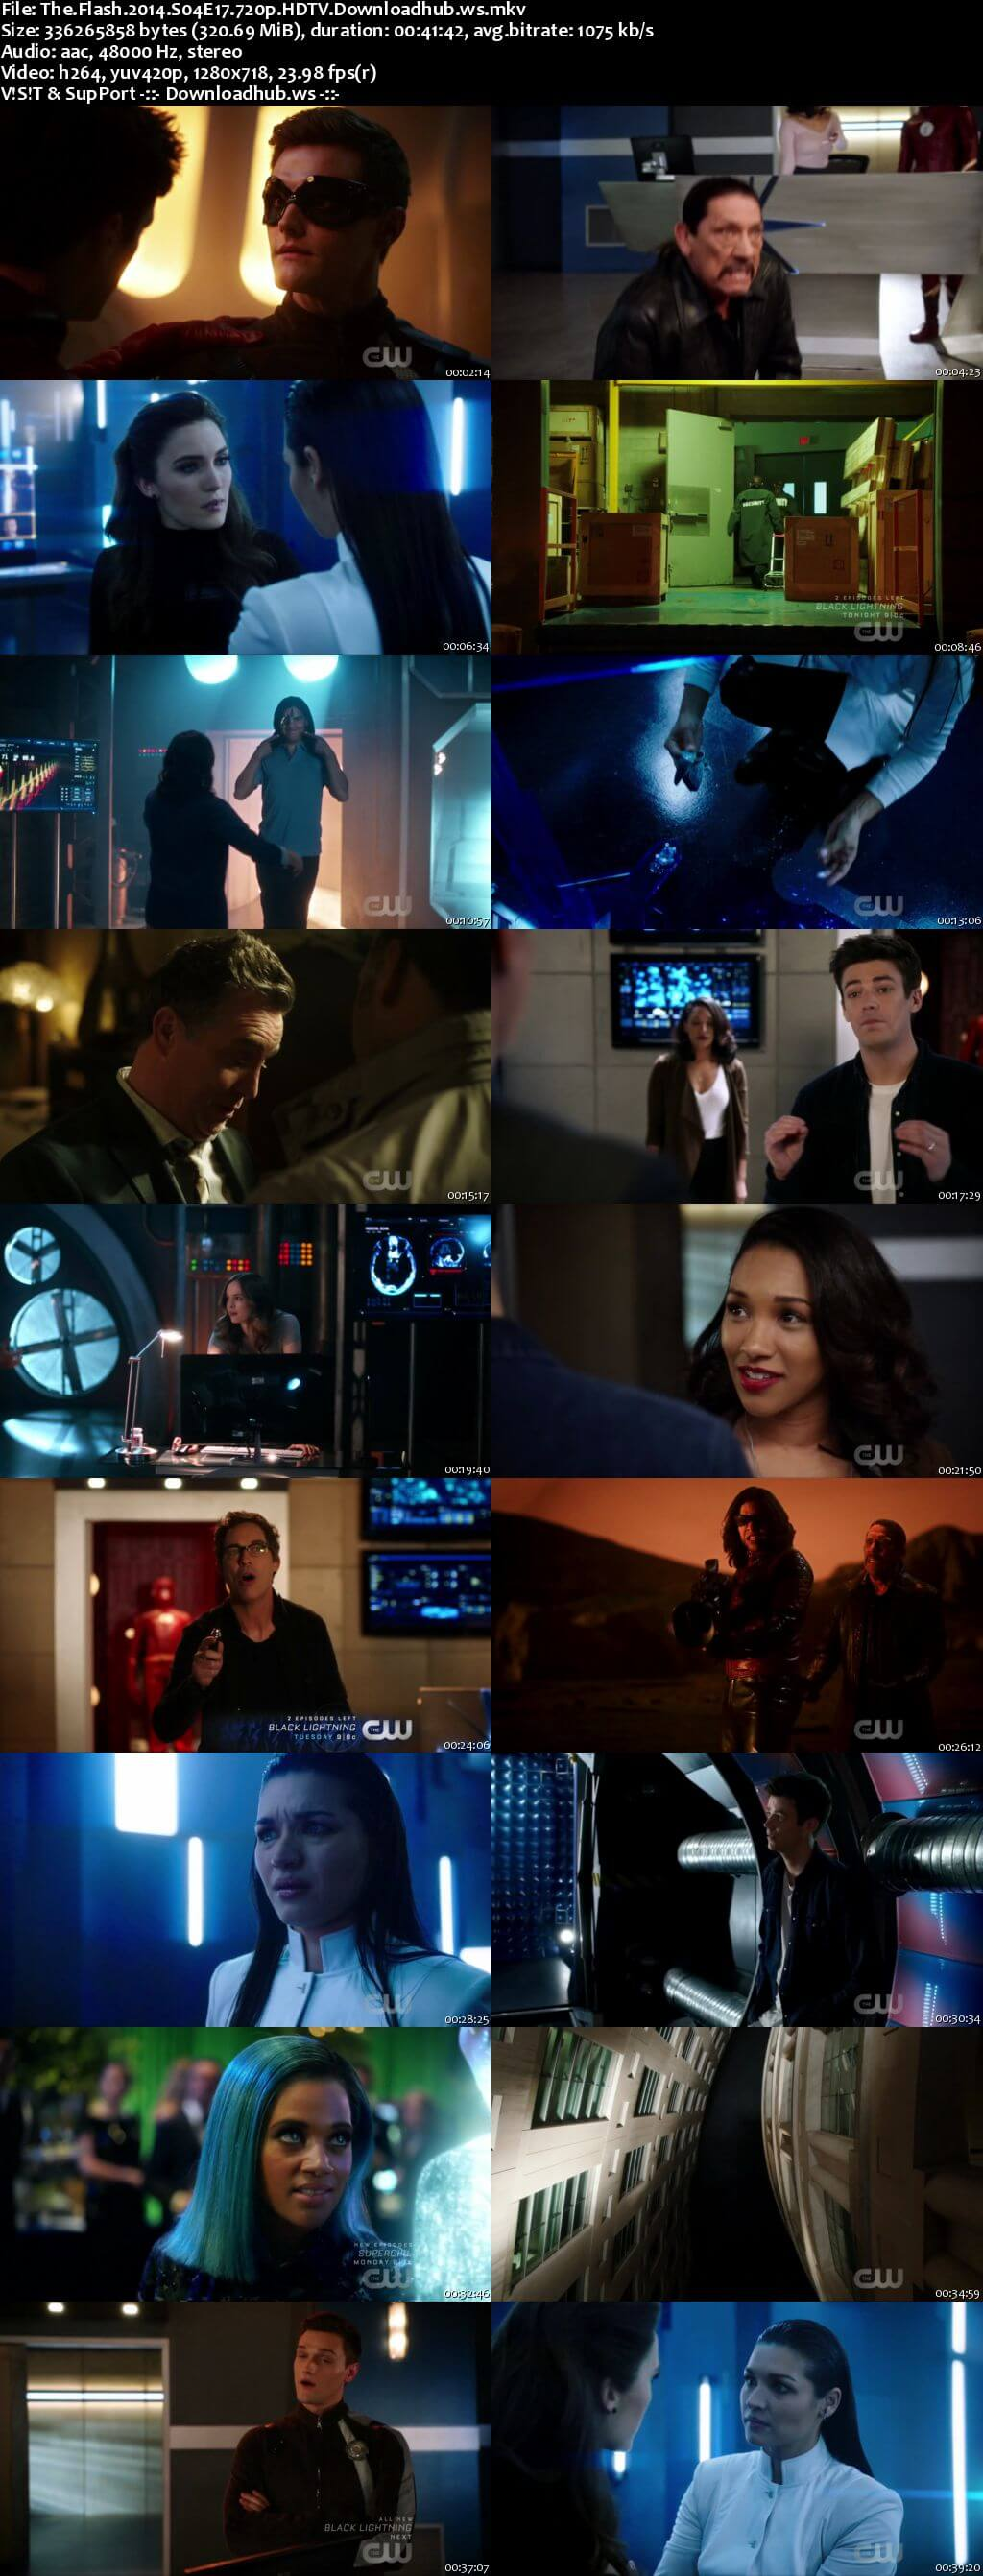 The Flash S04E17 300MB HDTV 720p x264